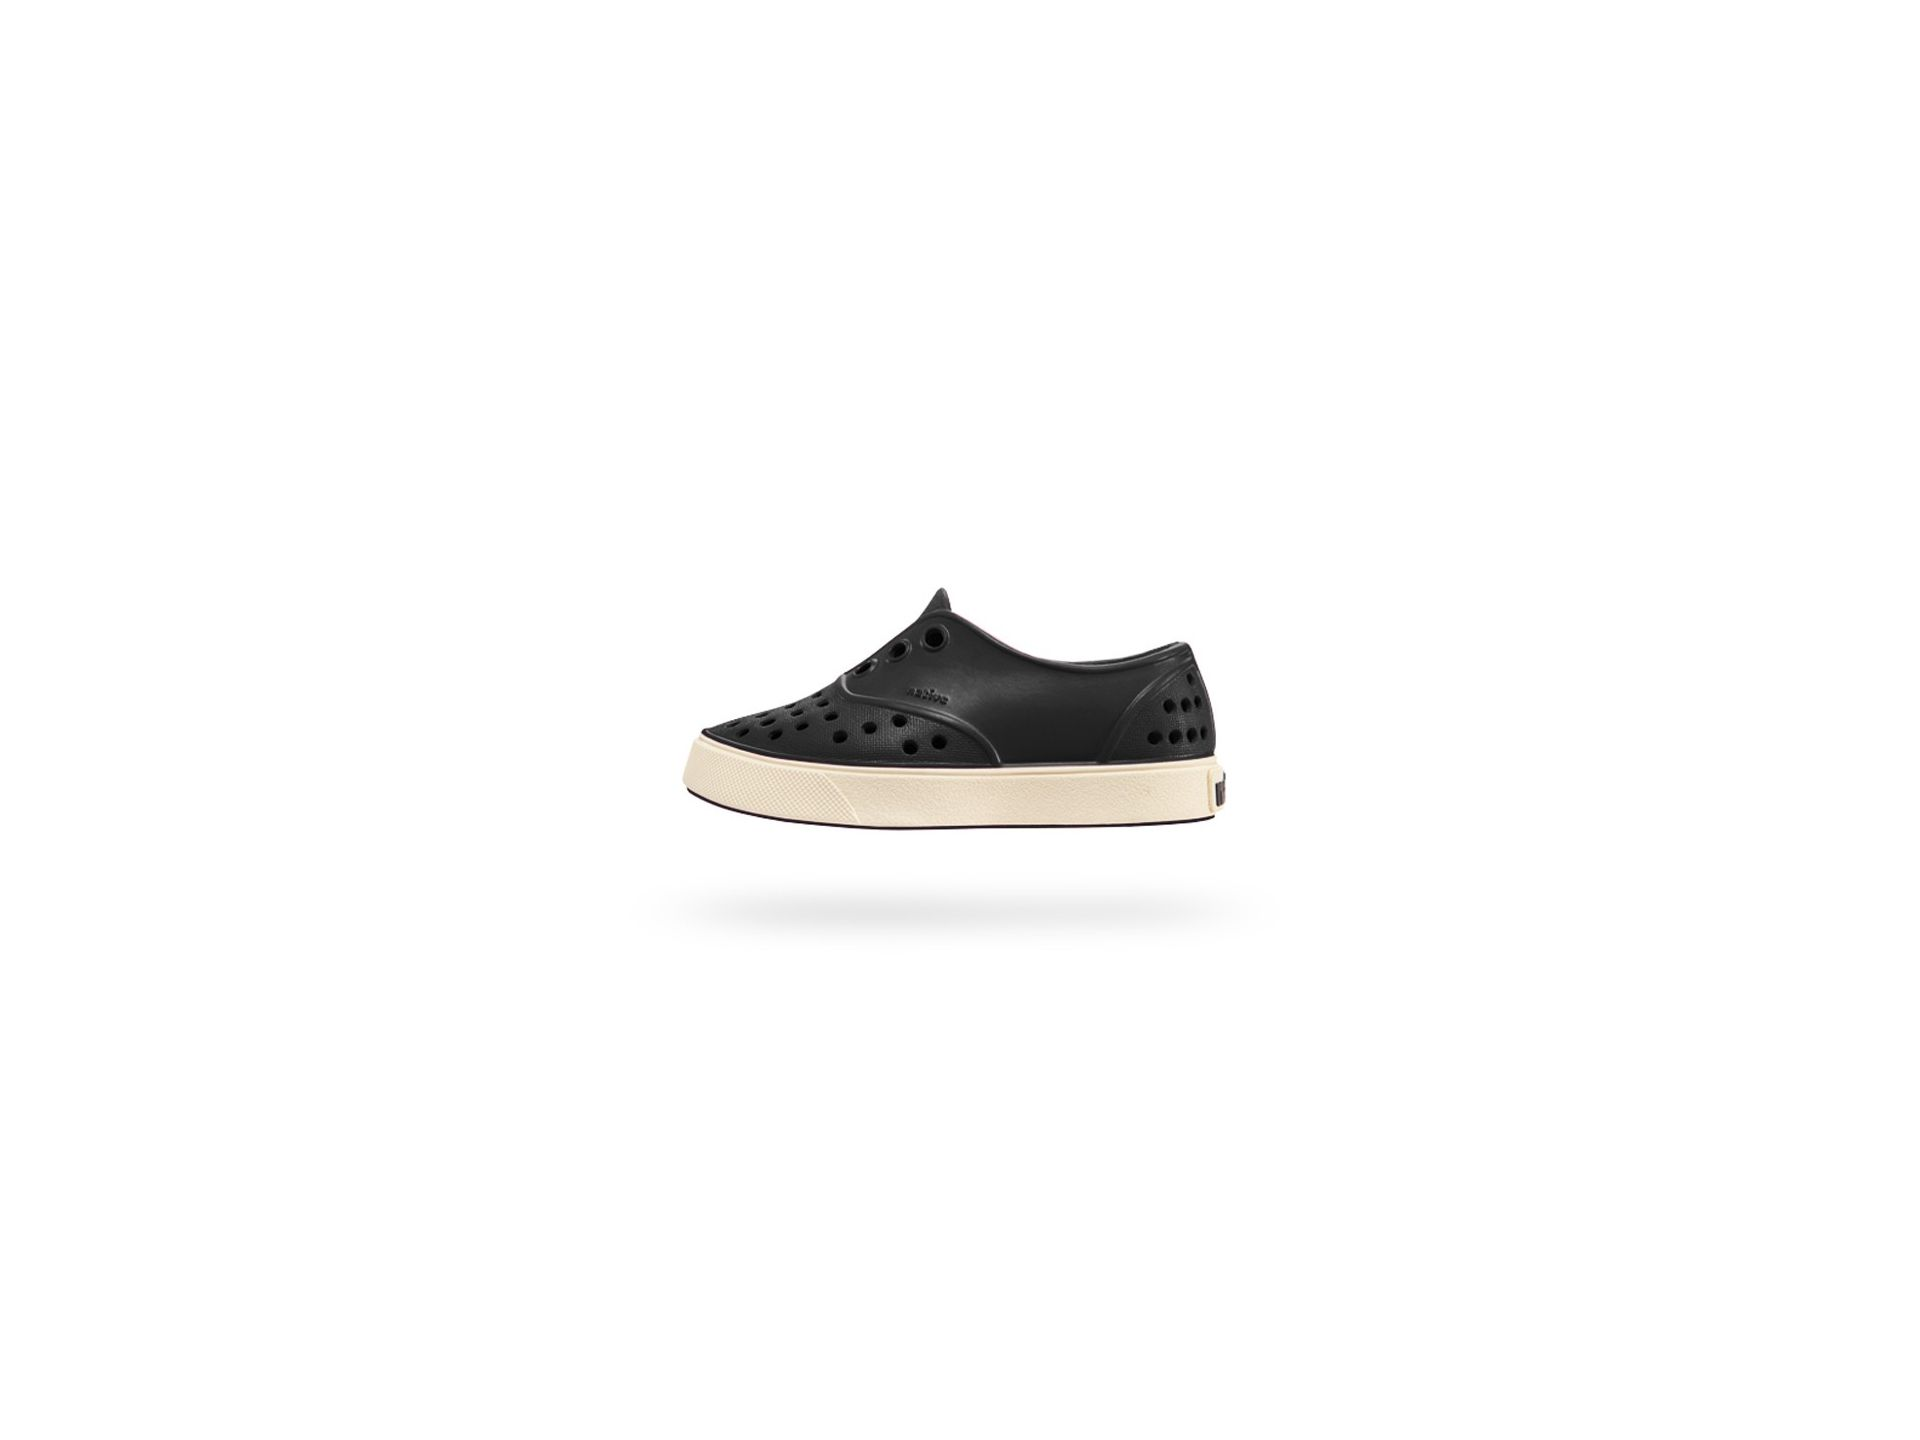 Native Shoes Toddler/Little Kid Miller Slip-On Shoe - Jeffy Black - Jiffy Black - C6